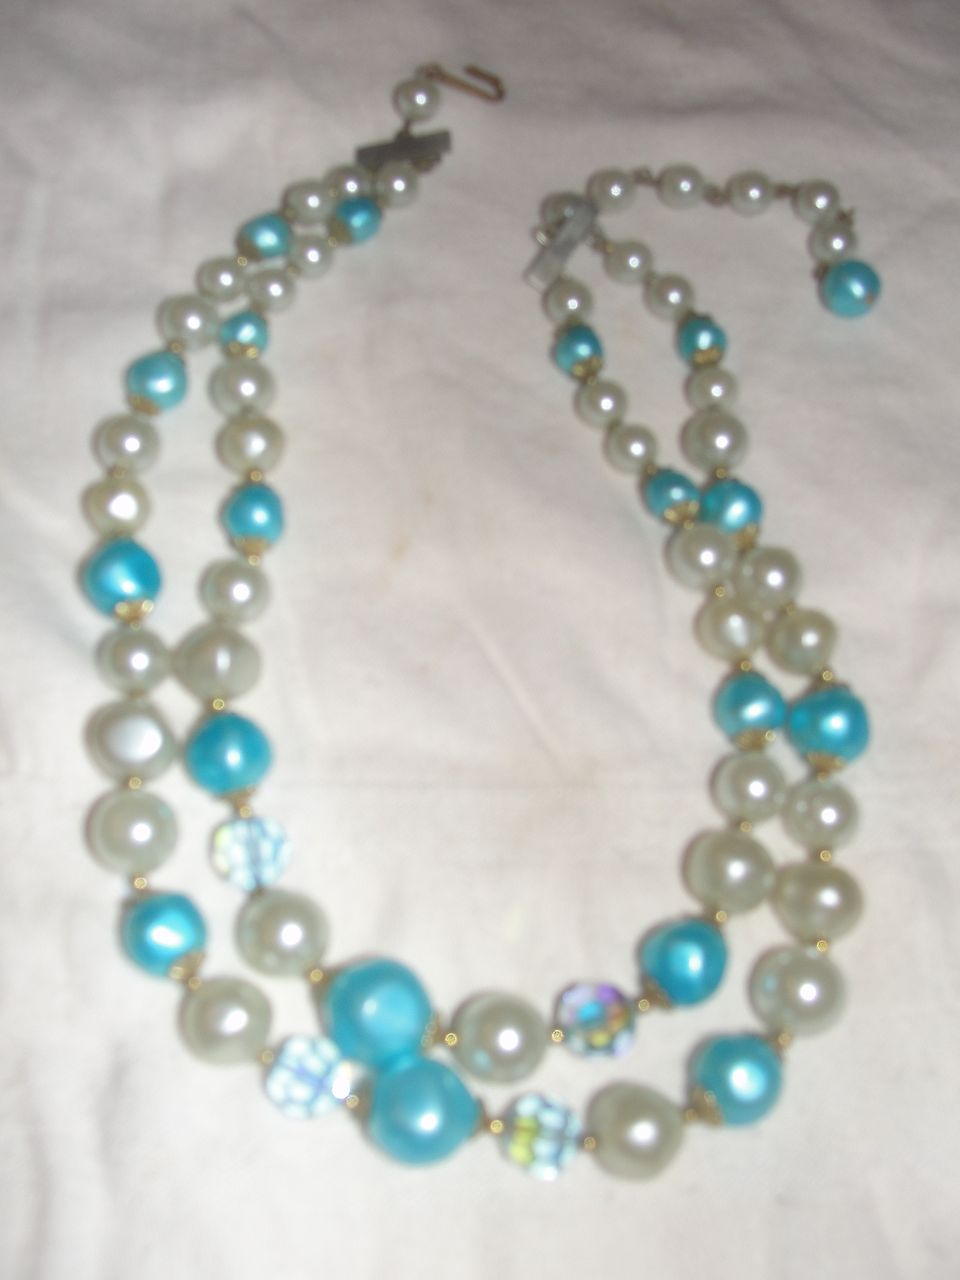 Aqua and Blue Aurora Borealis Bead Necklace - Free Shipping